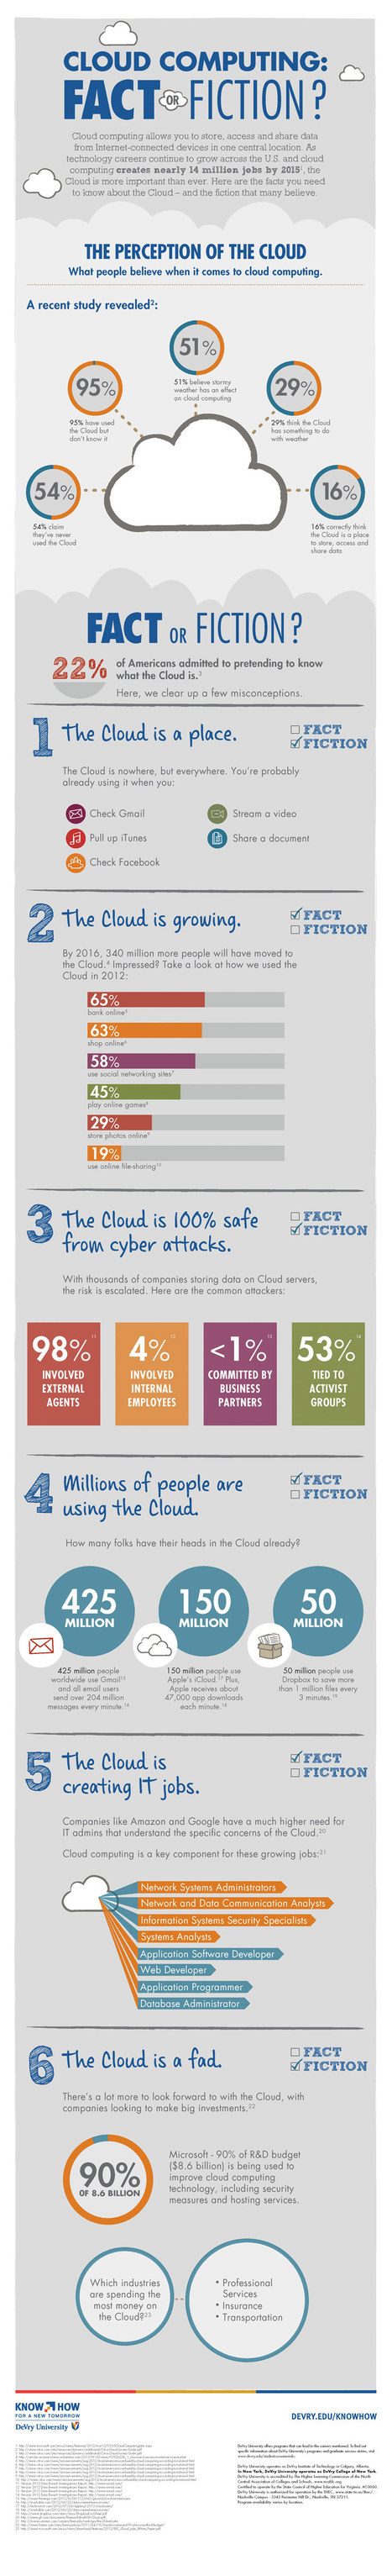 Is Cloud Computing a Fact or Fiction? – infographic | BUSINESS and more | Scoop.it